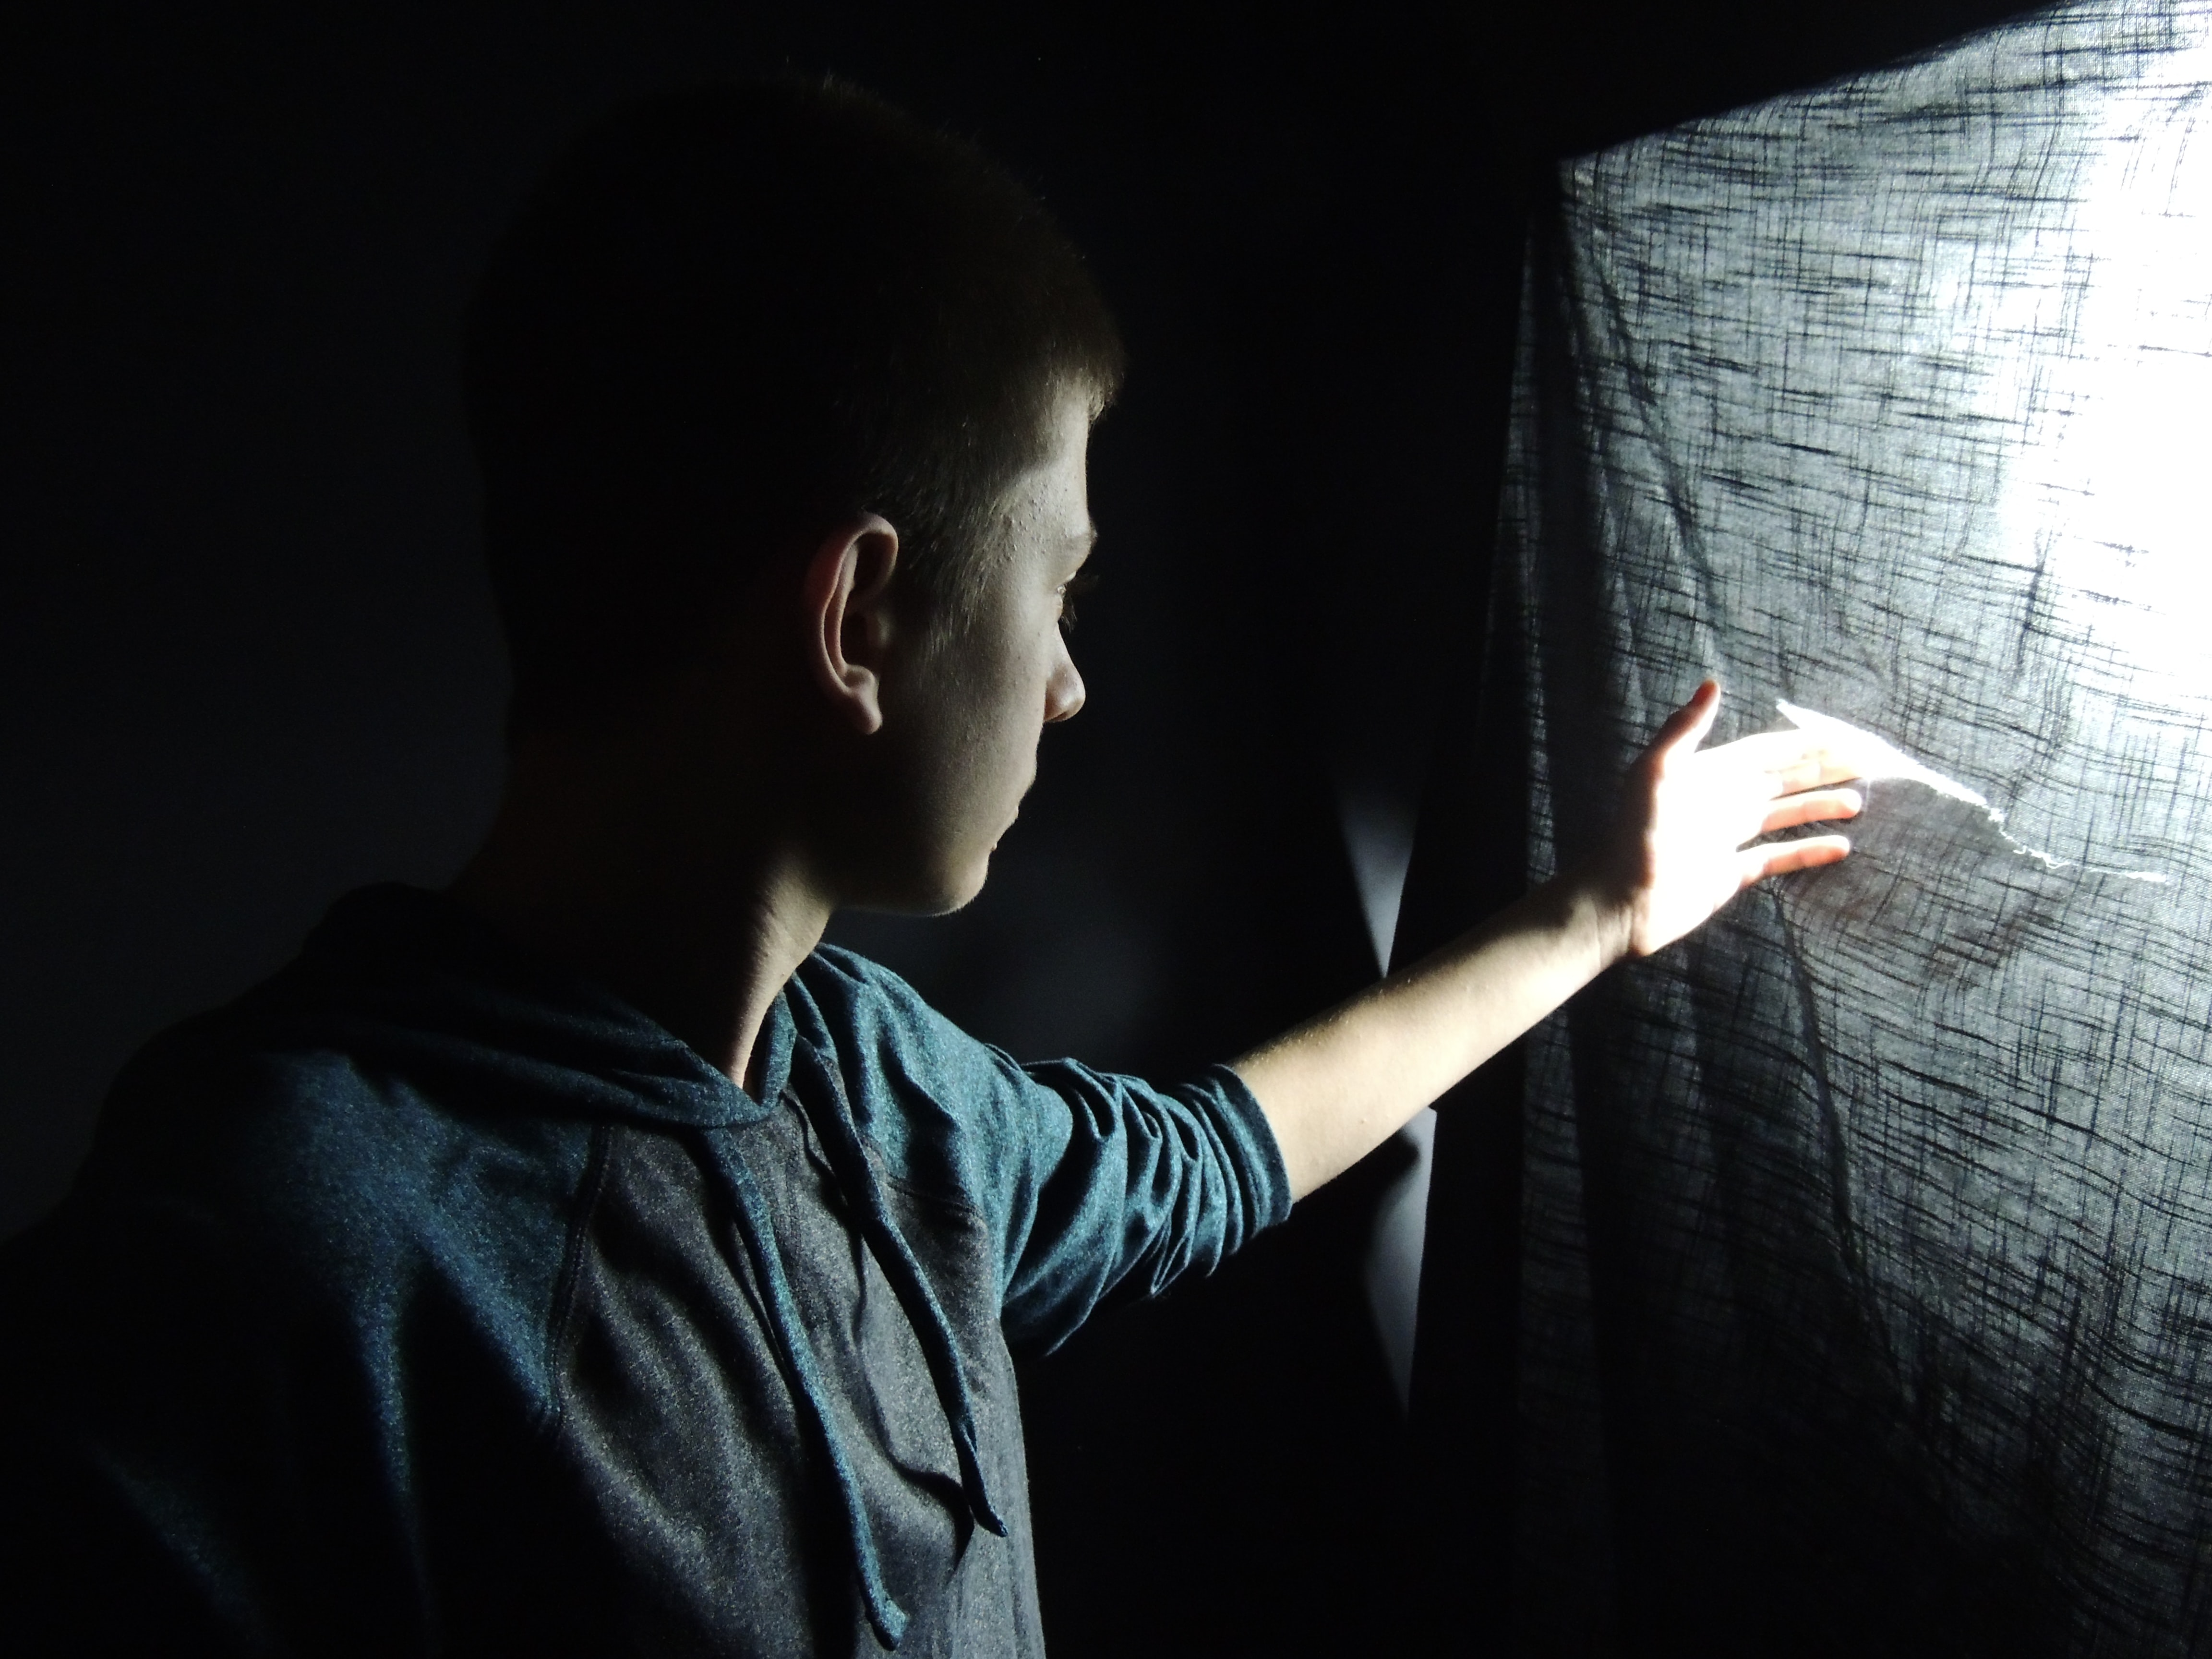 A boy touches the tear of a piece of cloth where light is coming in.